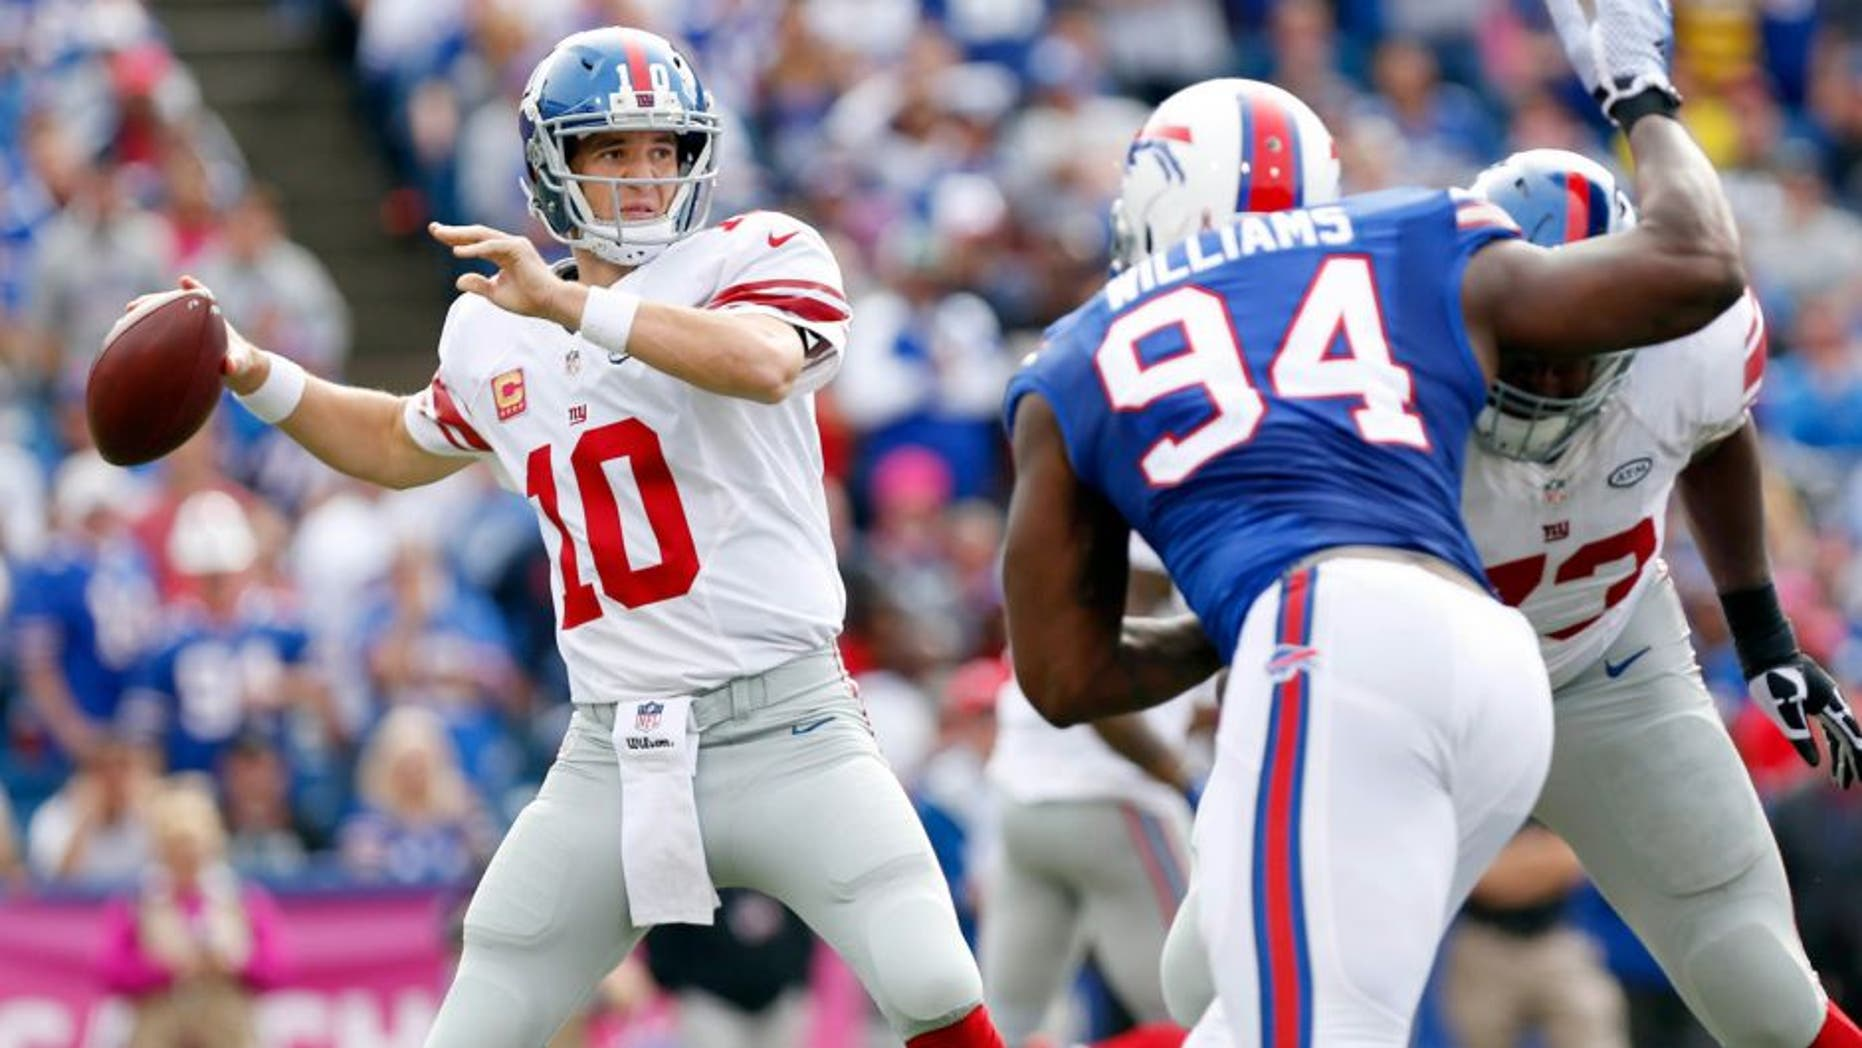 Oct 4, 2015; Orchard Park, NY, USA; New York Giants quarterback Eli Manning (10) throws a pass under pressure by Buffalo Bills defensive end Mario Williams (94) during the second half at Ralph Wilson Stadium. Giants beat the Bills 24-10. Mandatory Credit: Kevin Hoffman-USA TODAY Sports